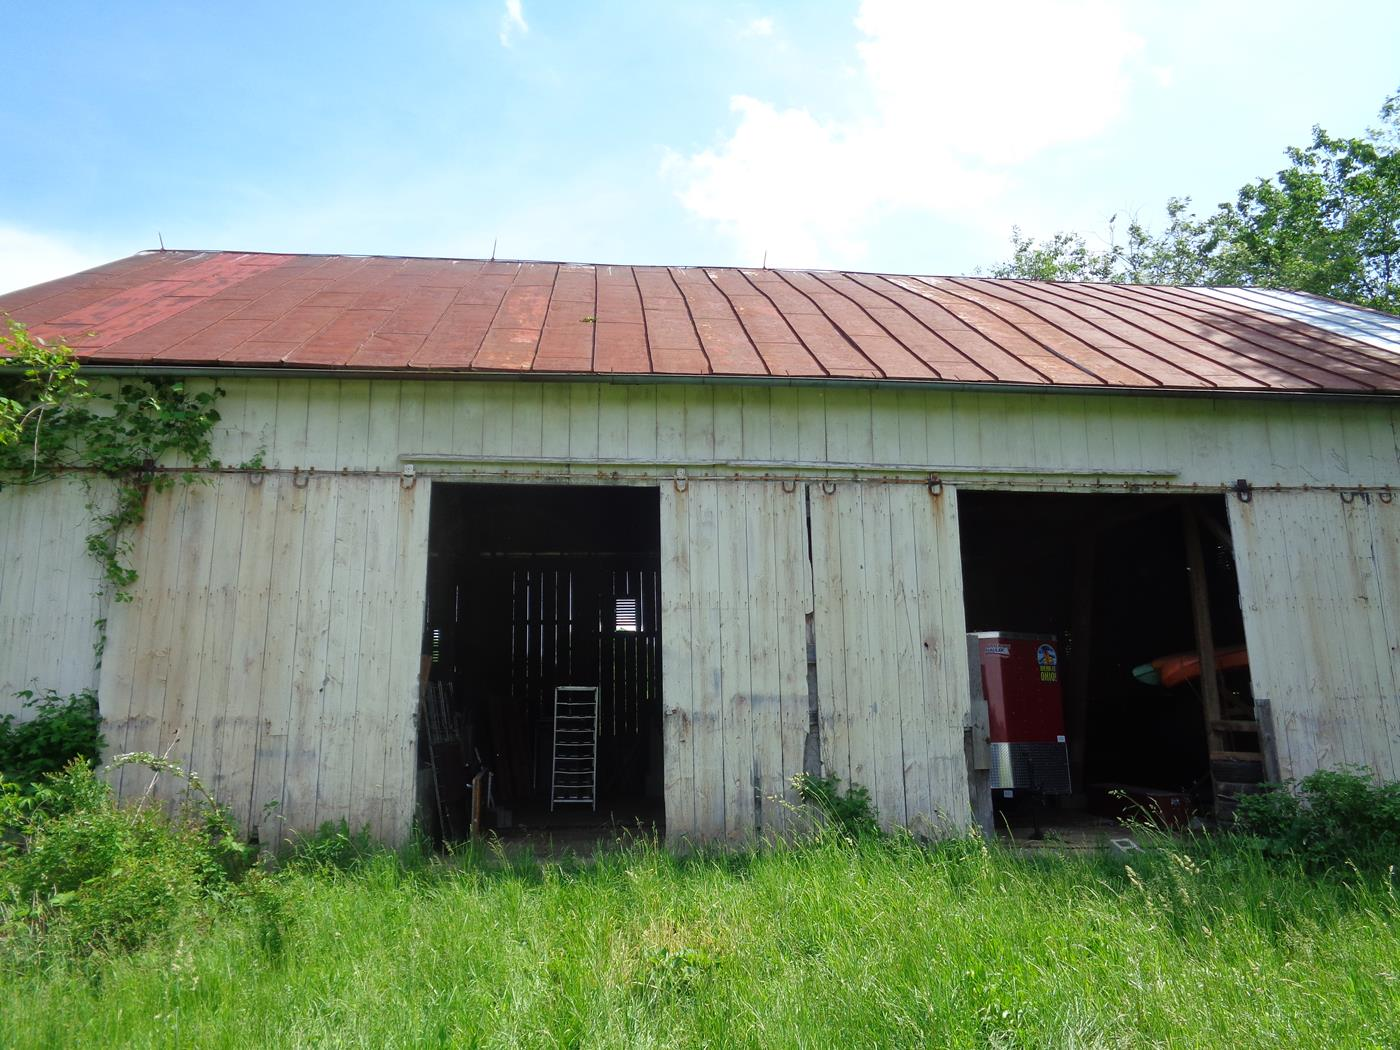 Tugend Road Barn Frame Salvage Site Cleanup Restoration 1